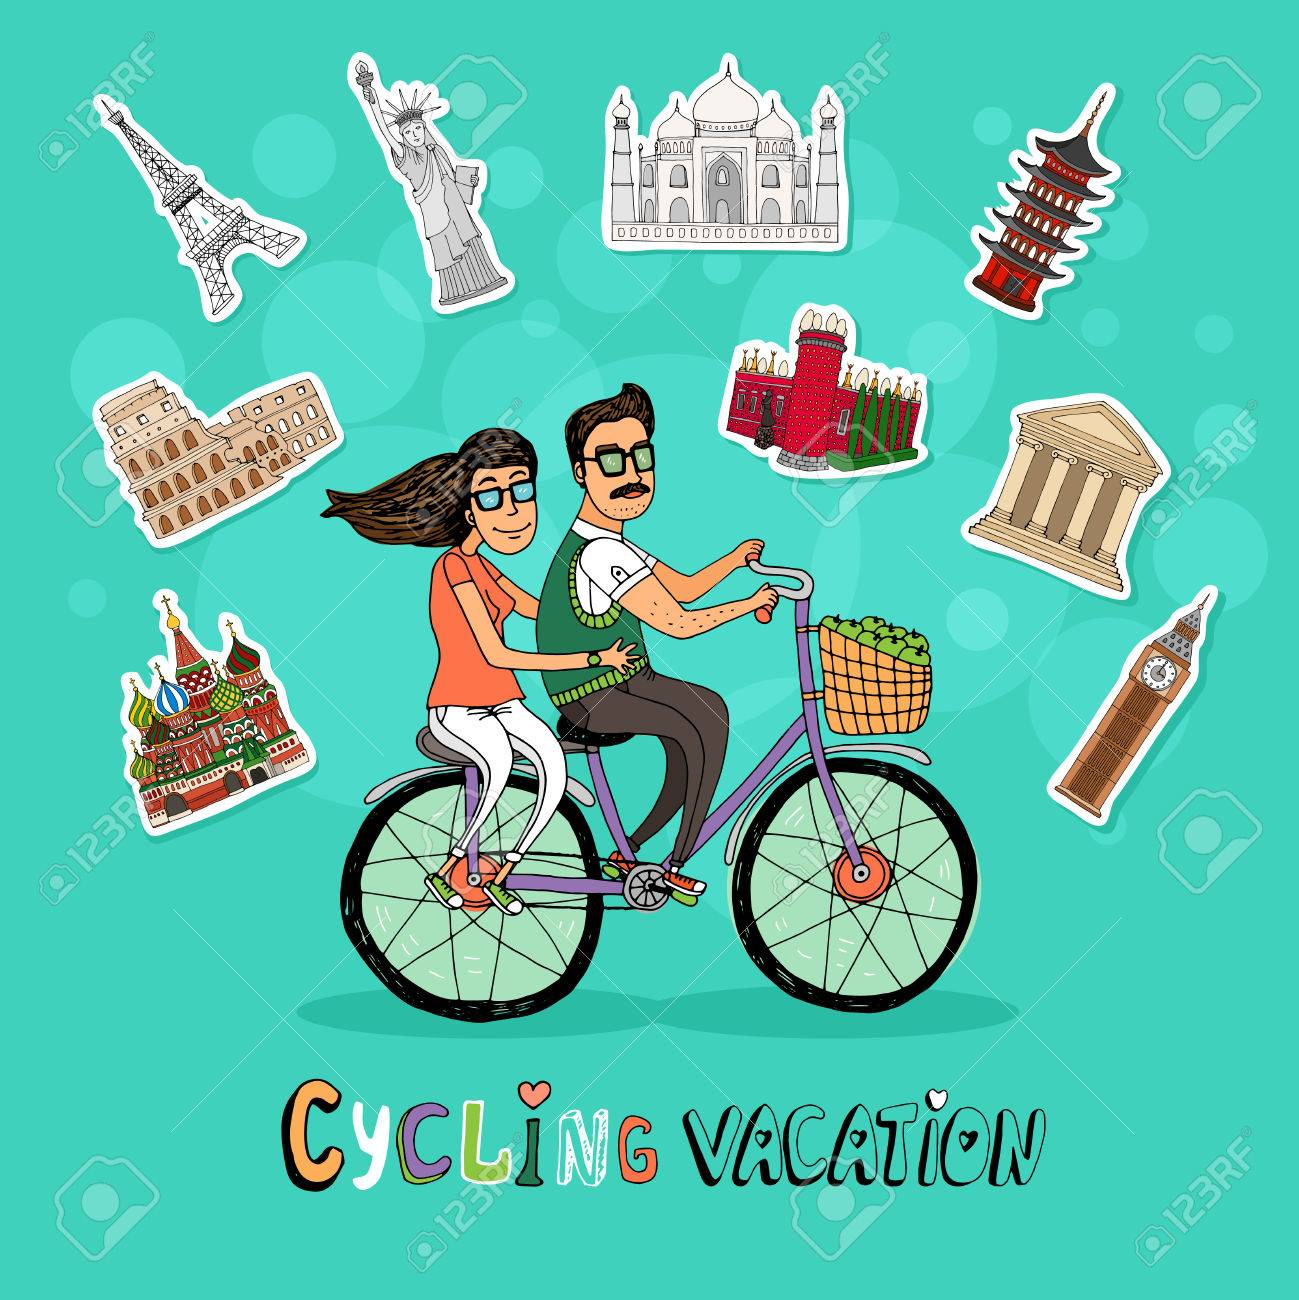 Couple on a Cycling Vacation riding a tandem bicycle together past a set of worldwide icons of famous tourist destinations with the text below  hand-drawn vector illustration Stock Vector - 29412221